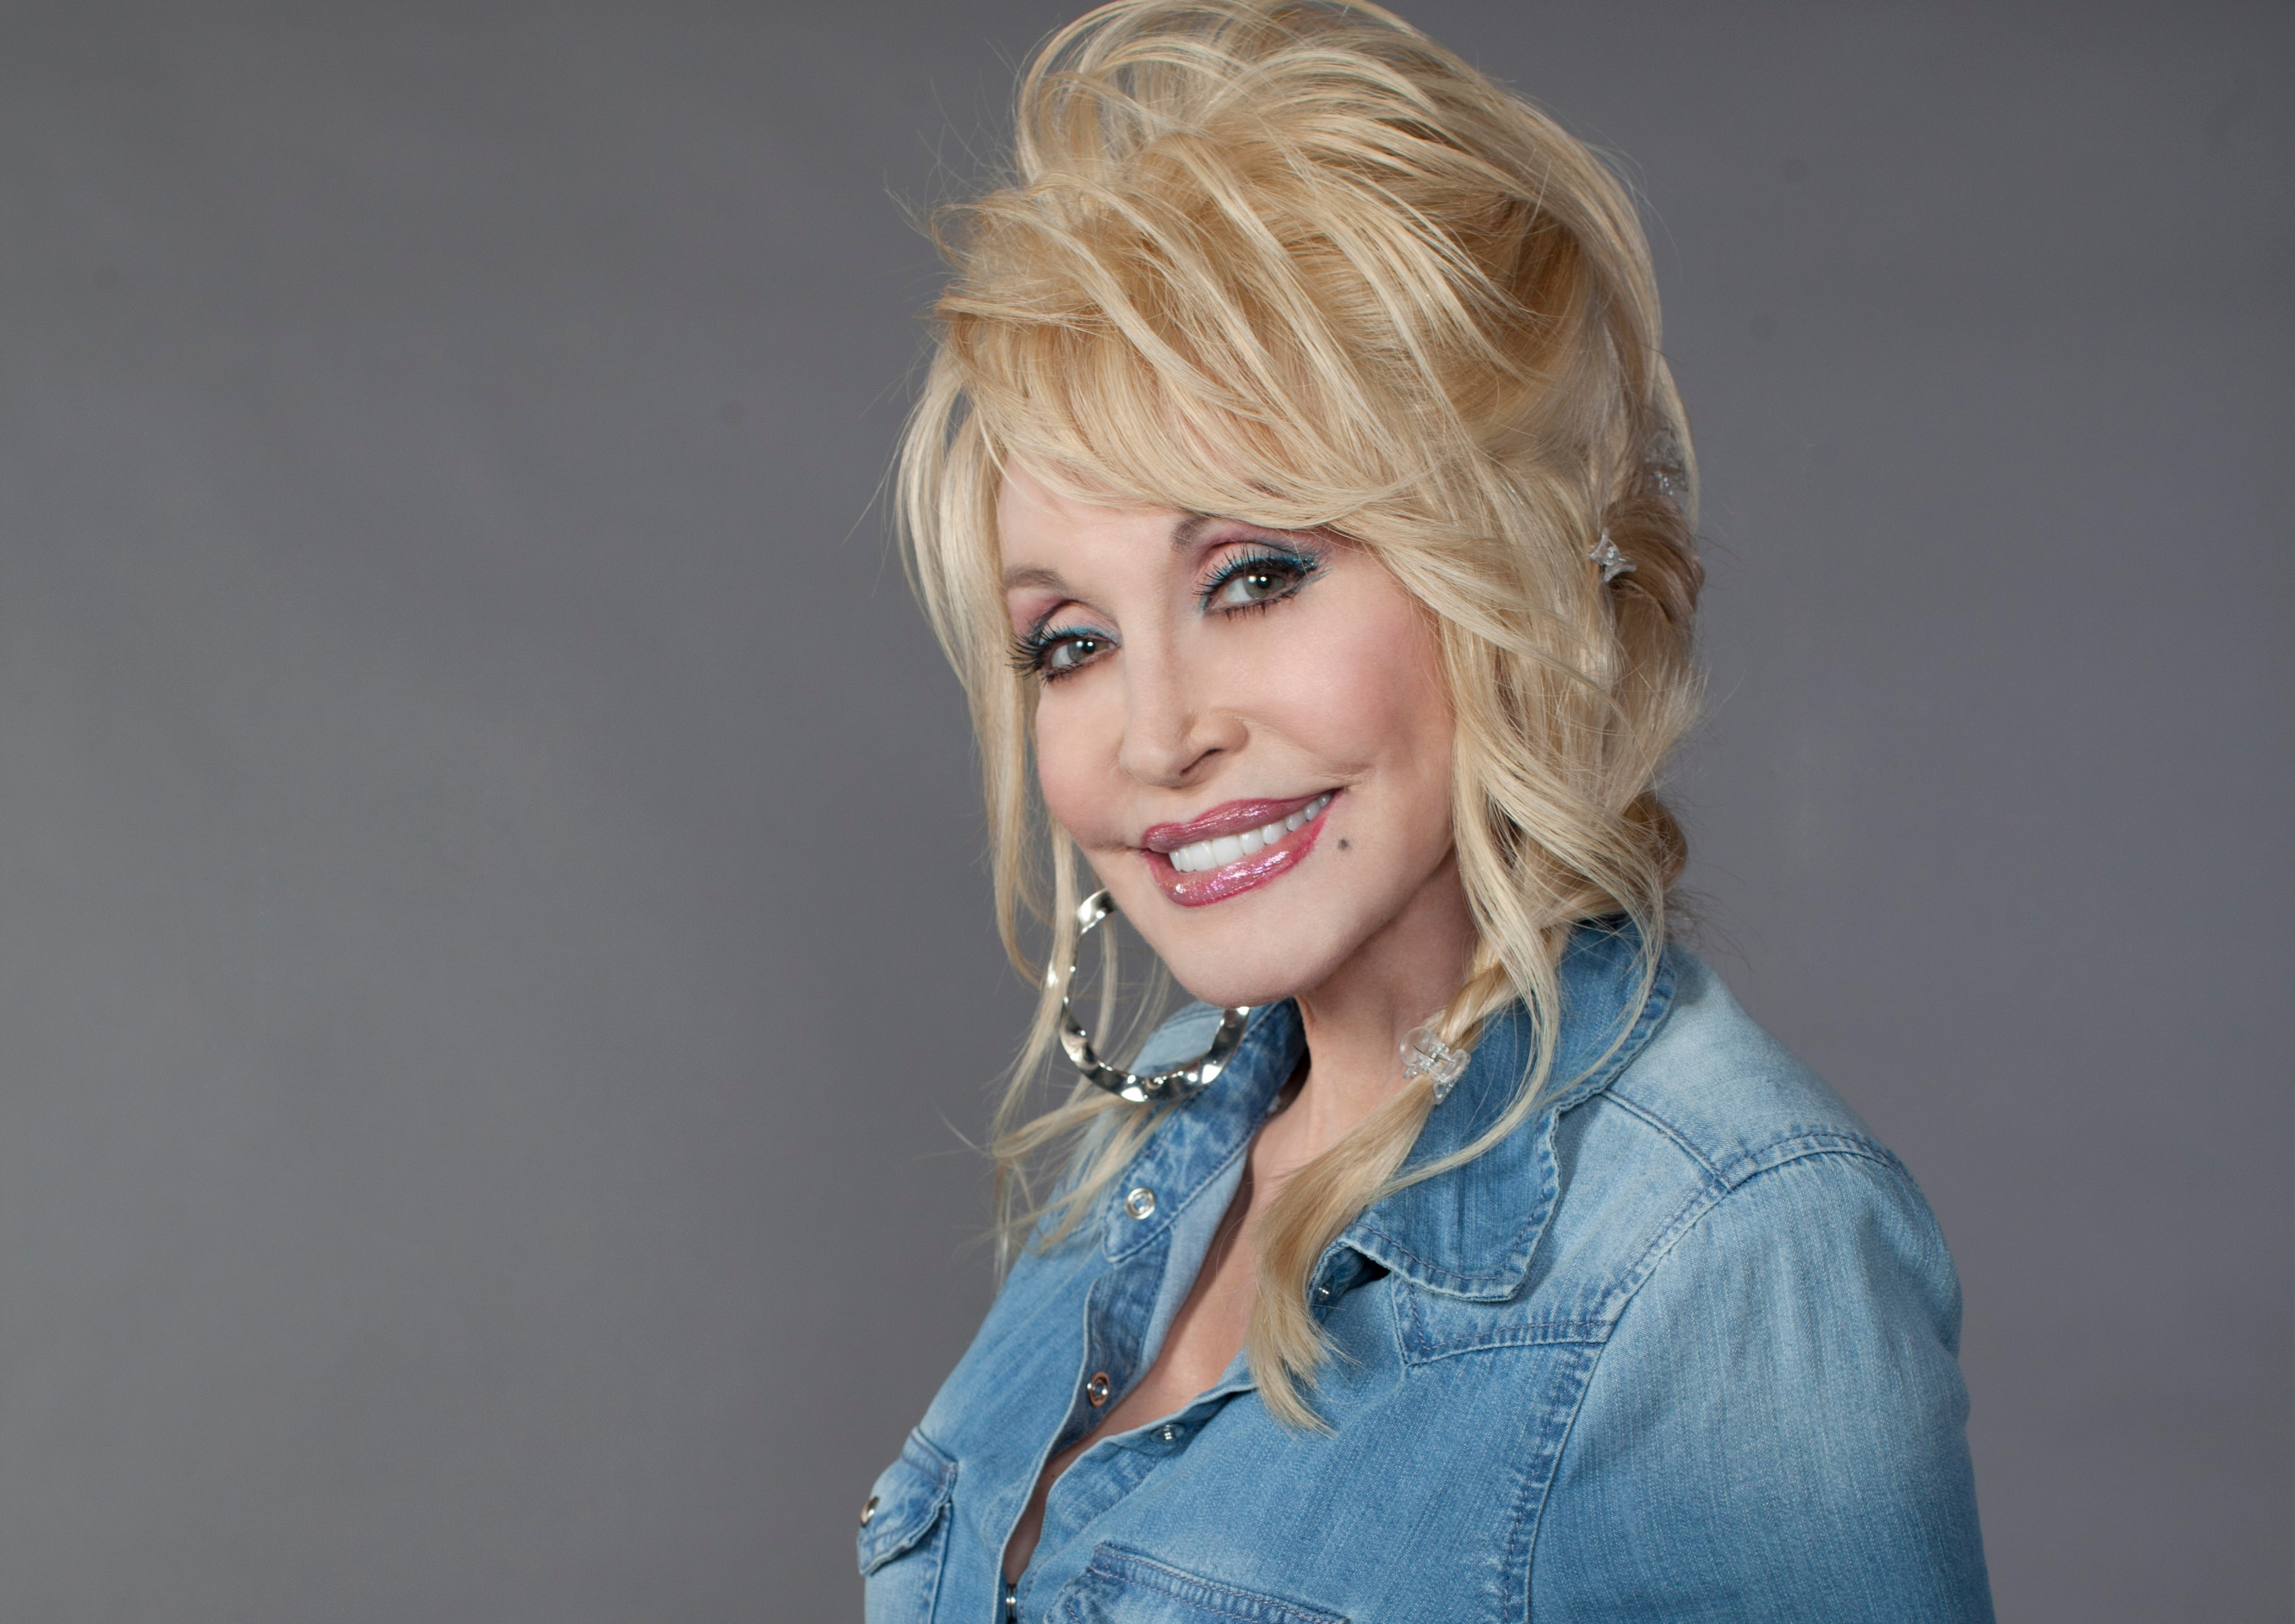 University of Tennessee to Offer Class on Dolly Parton's Life